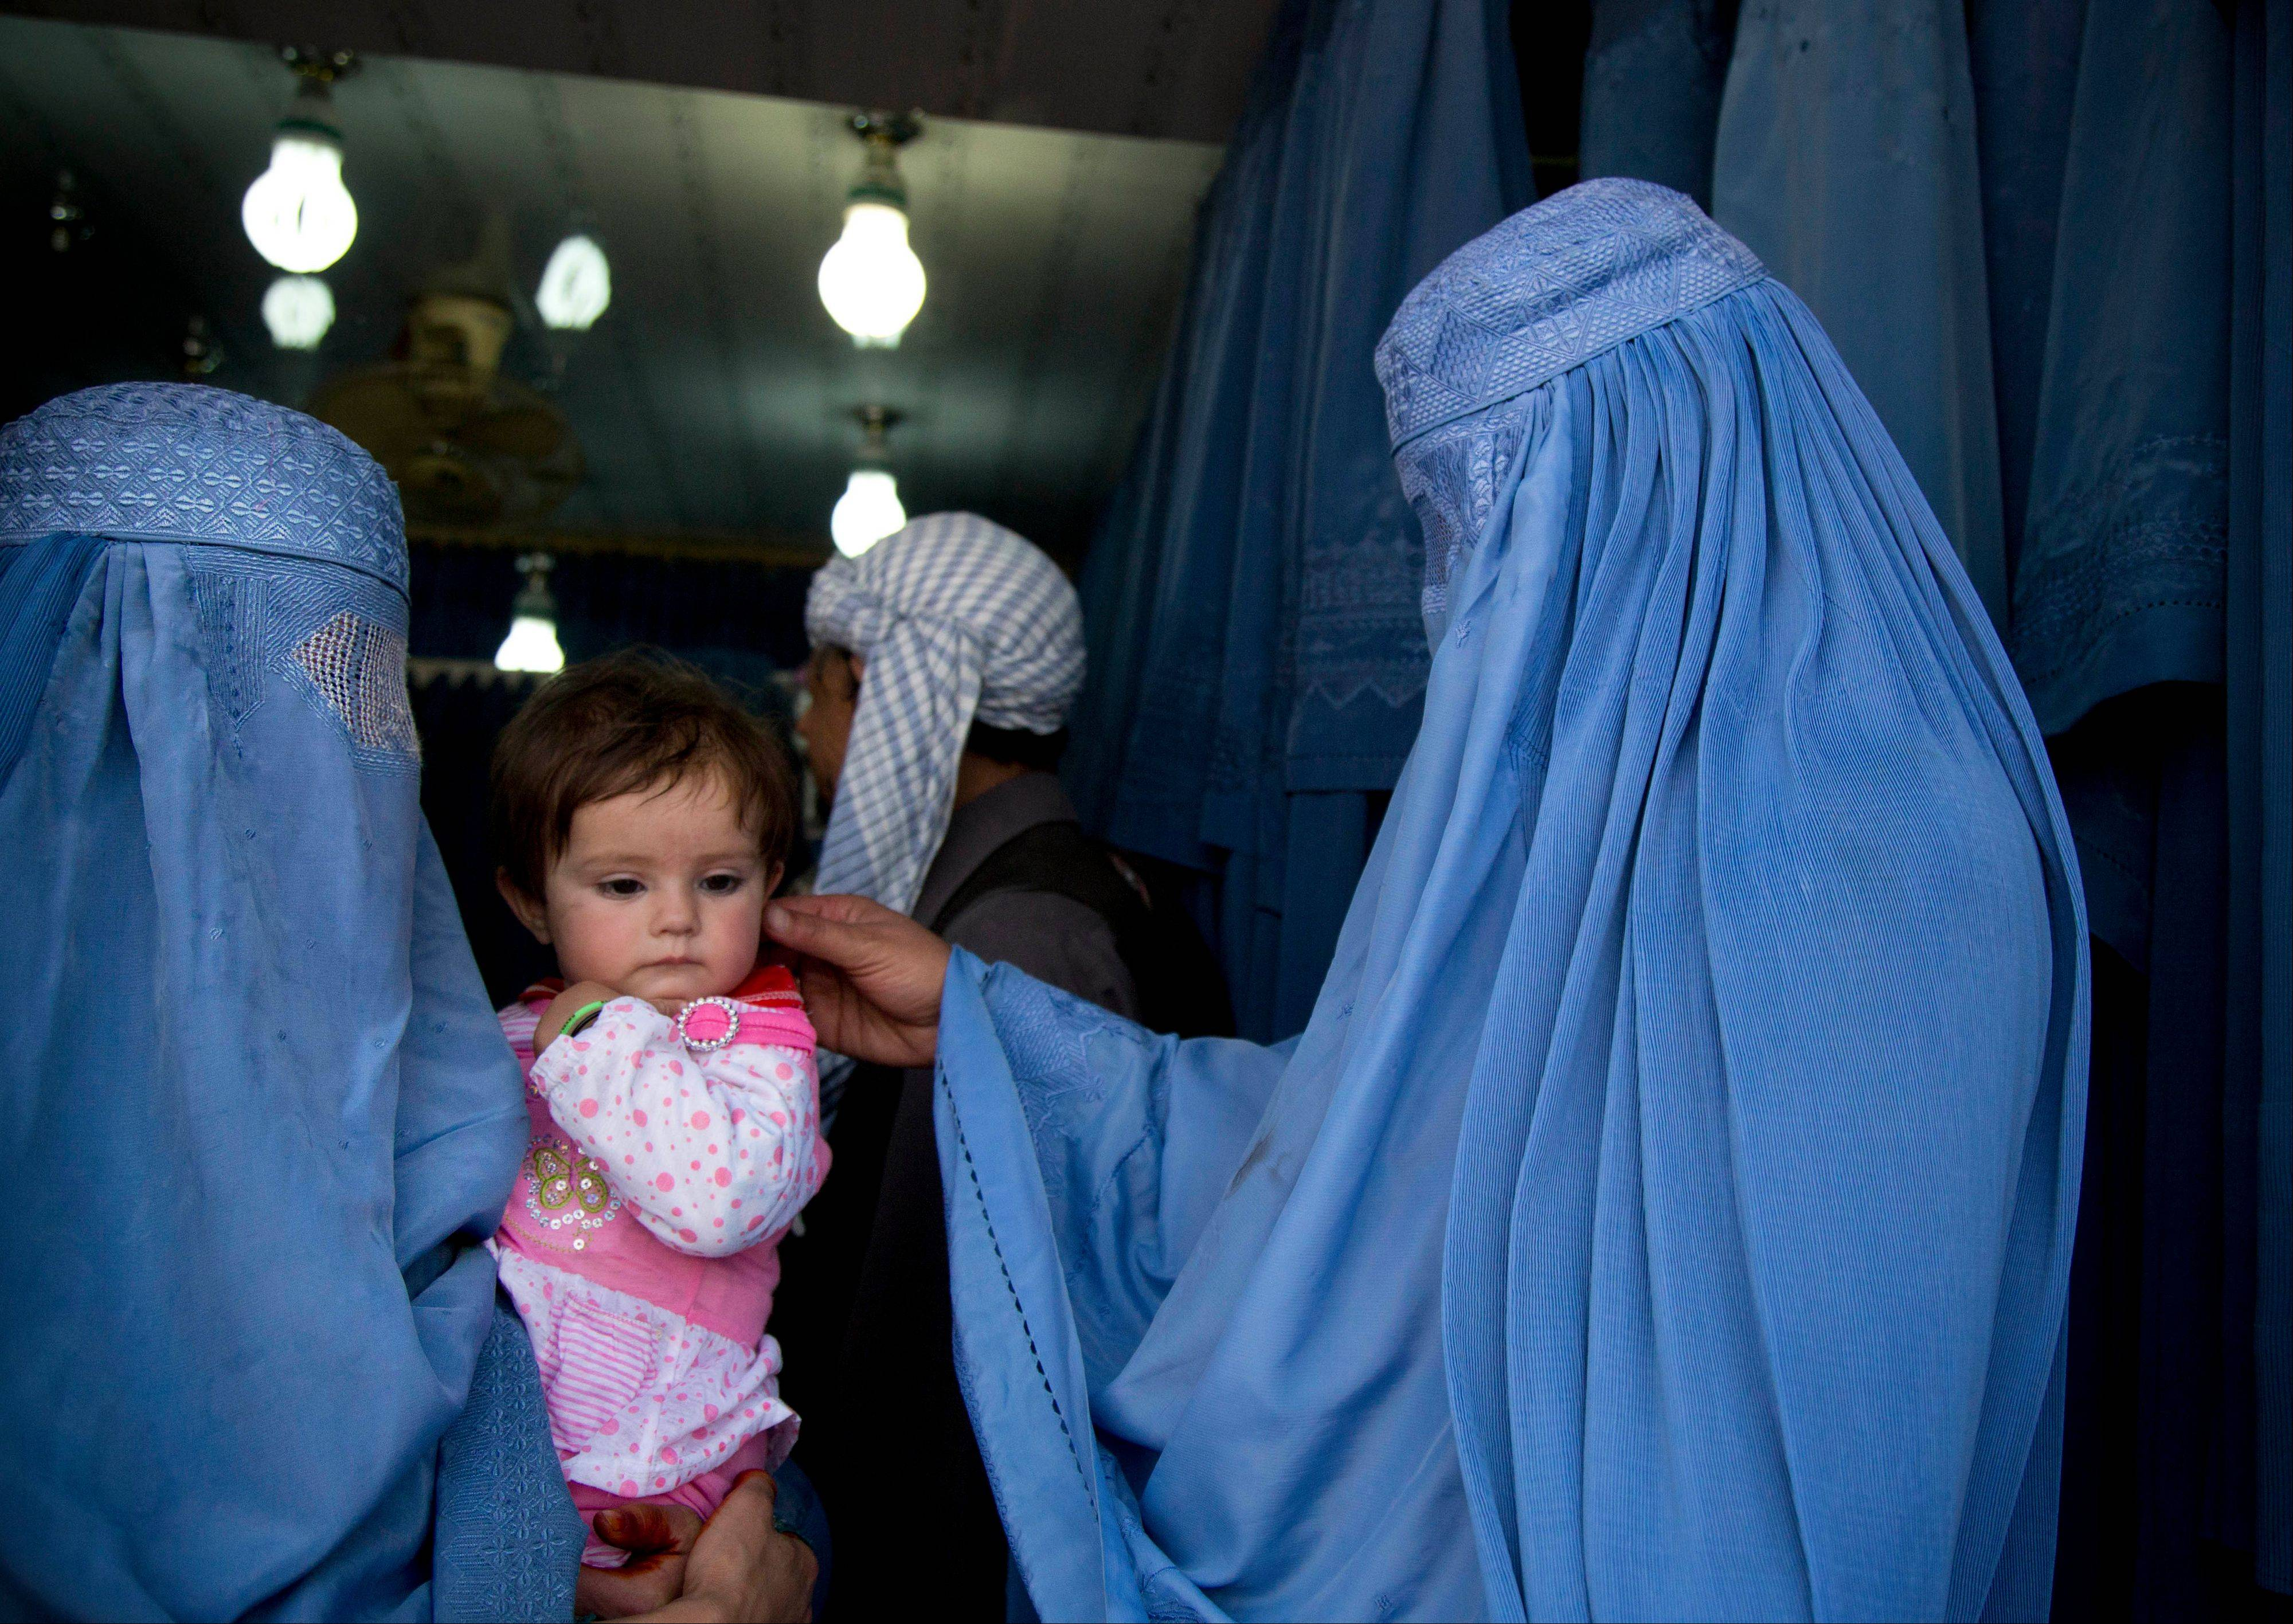 An Afghan woman comforts the child of her friend as both wait to get in line to try on a new burqa in a shop in the old town of Kabul, Afghanistan. Despite advances in womenís rights, Afghanistan remains a deeply conservative country and most women continue to wear the Burqa. But tradesmen say times are changing in Kabul at least, with demand for burqas declining as young women going to school and taking office jobs refuse to wear the cumbersome garments.